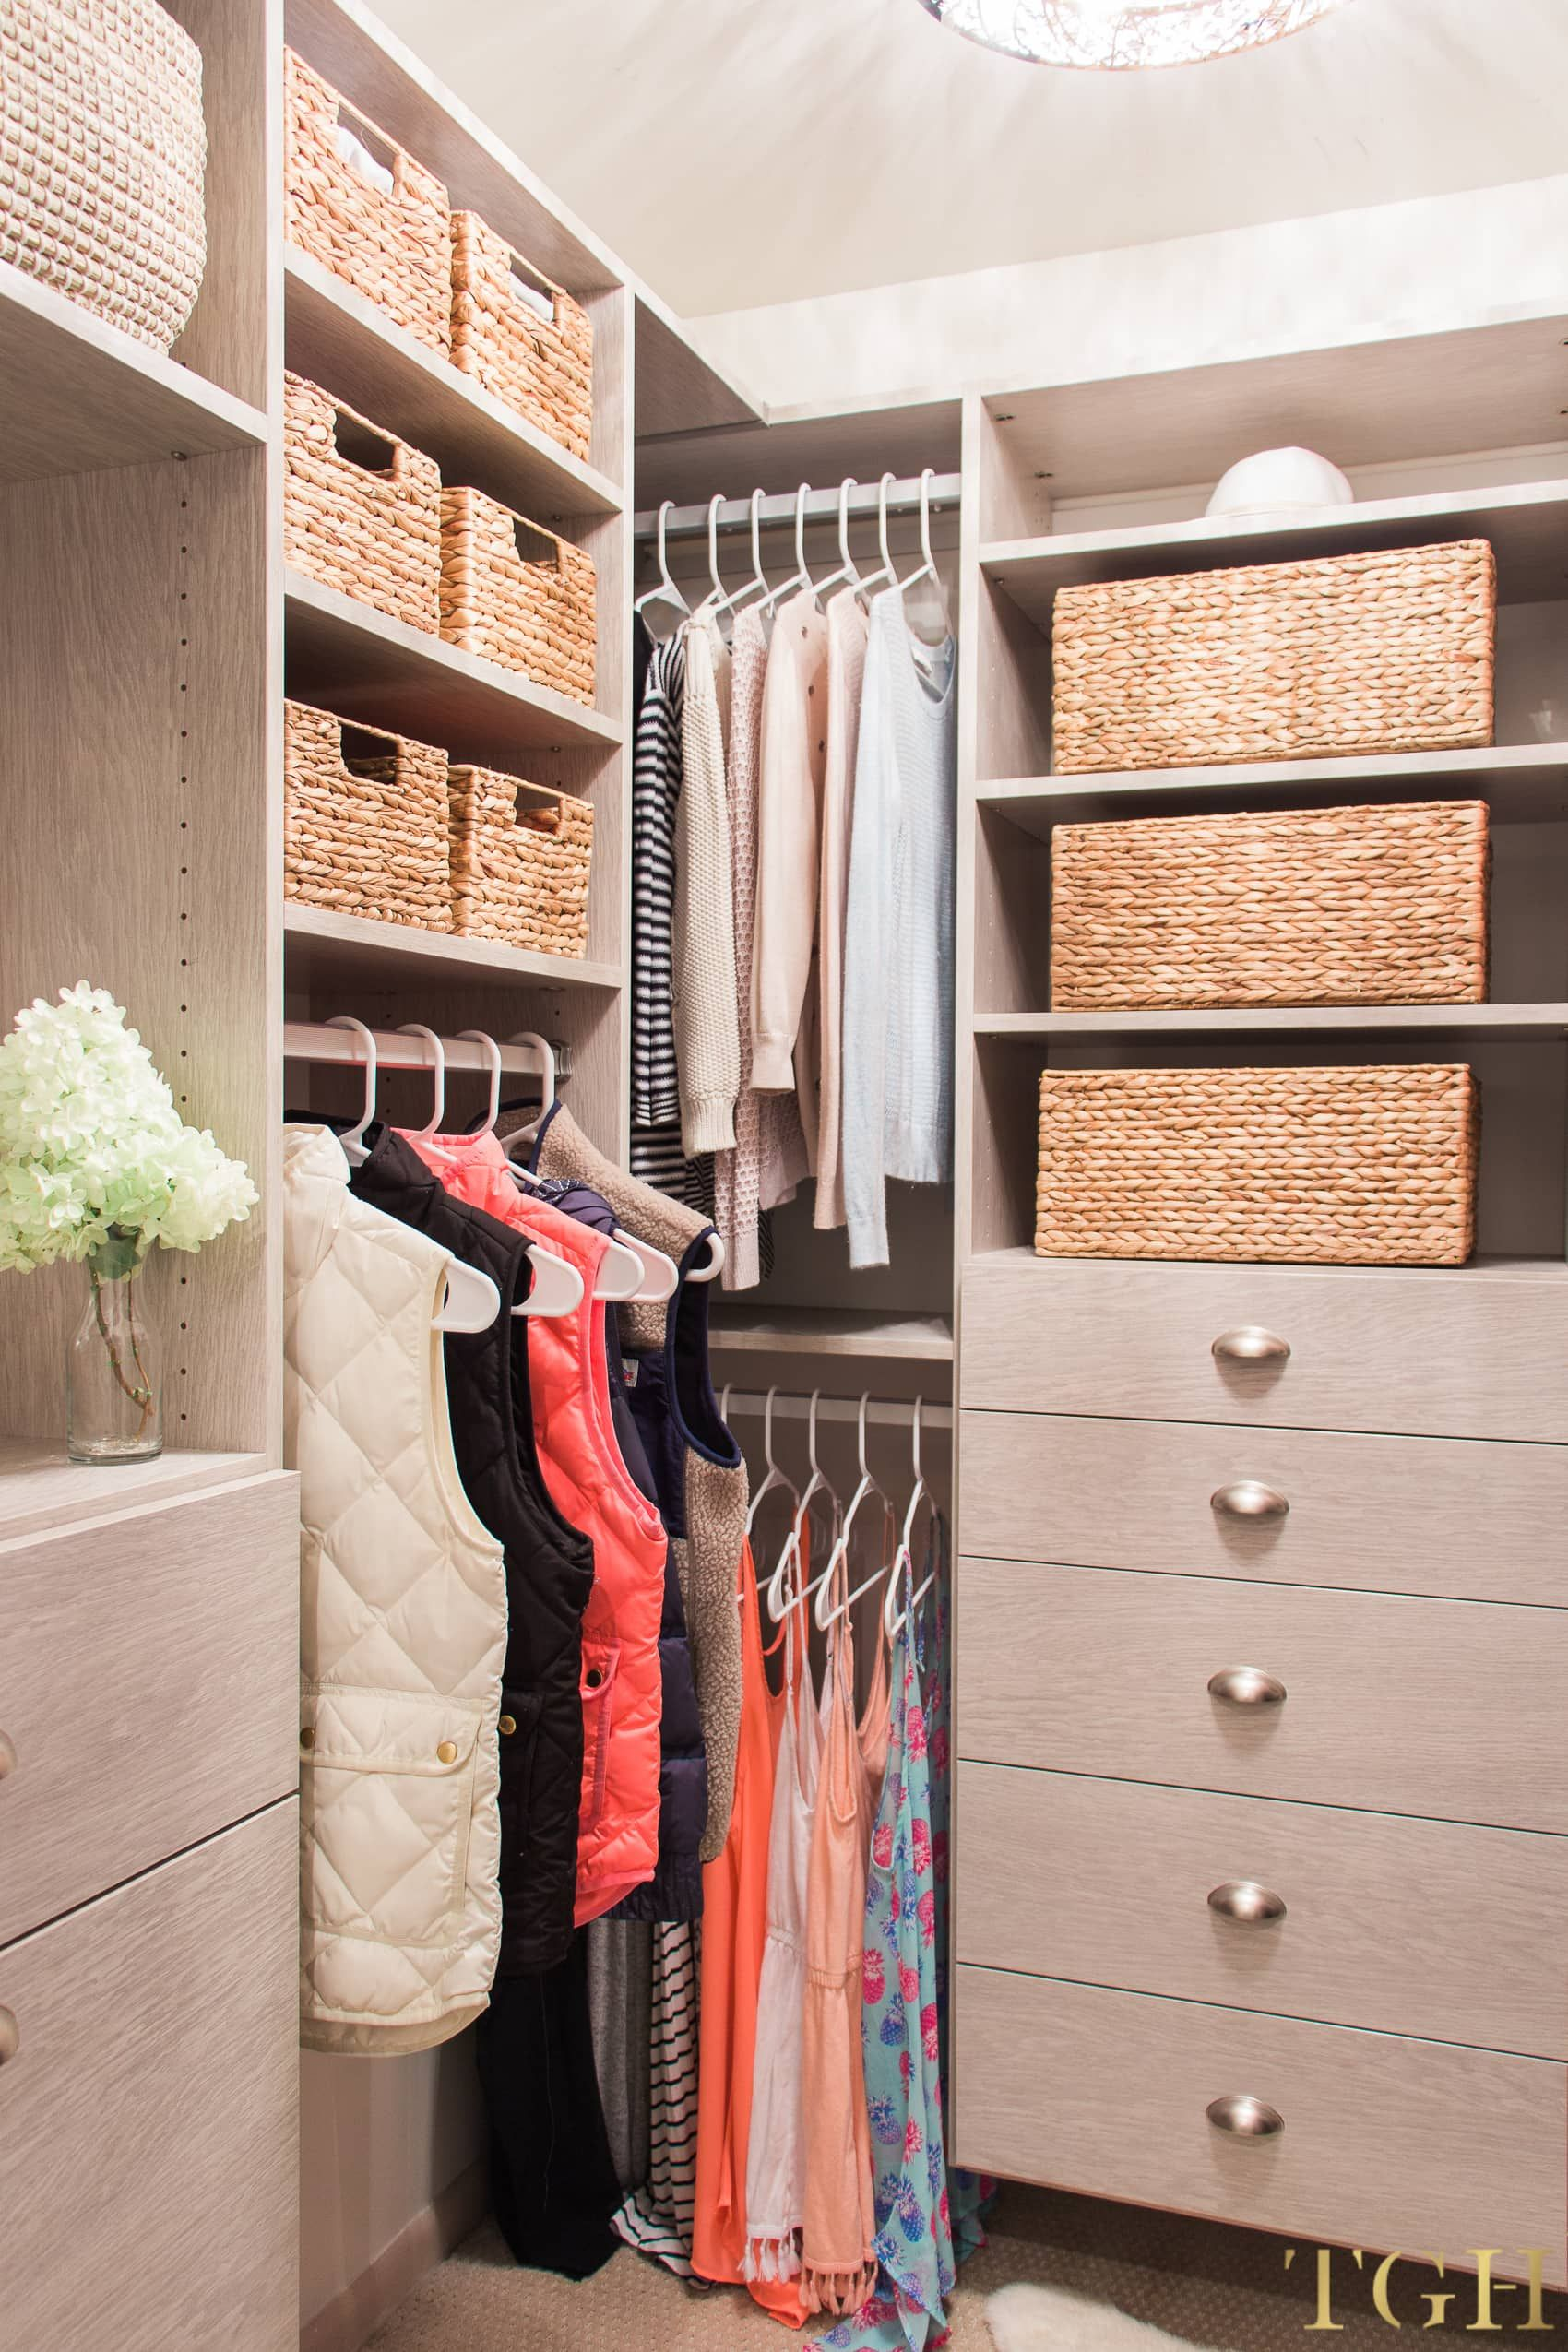 California Closets Review With Pricing Including Before And After Photos Master Walk In Drawers Shoe Storage